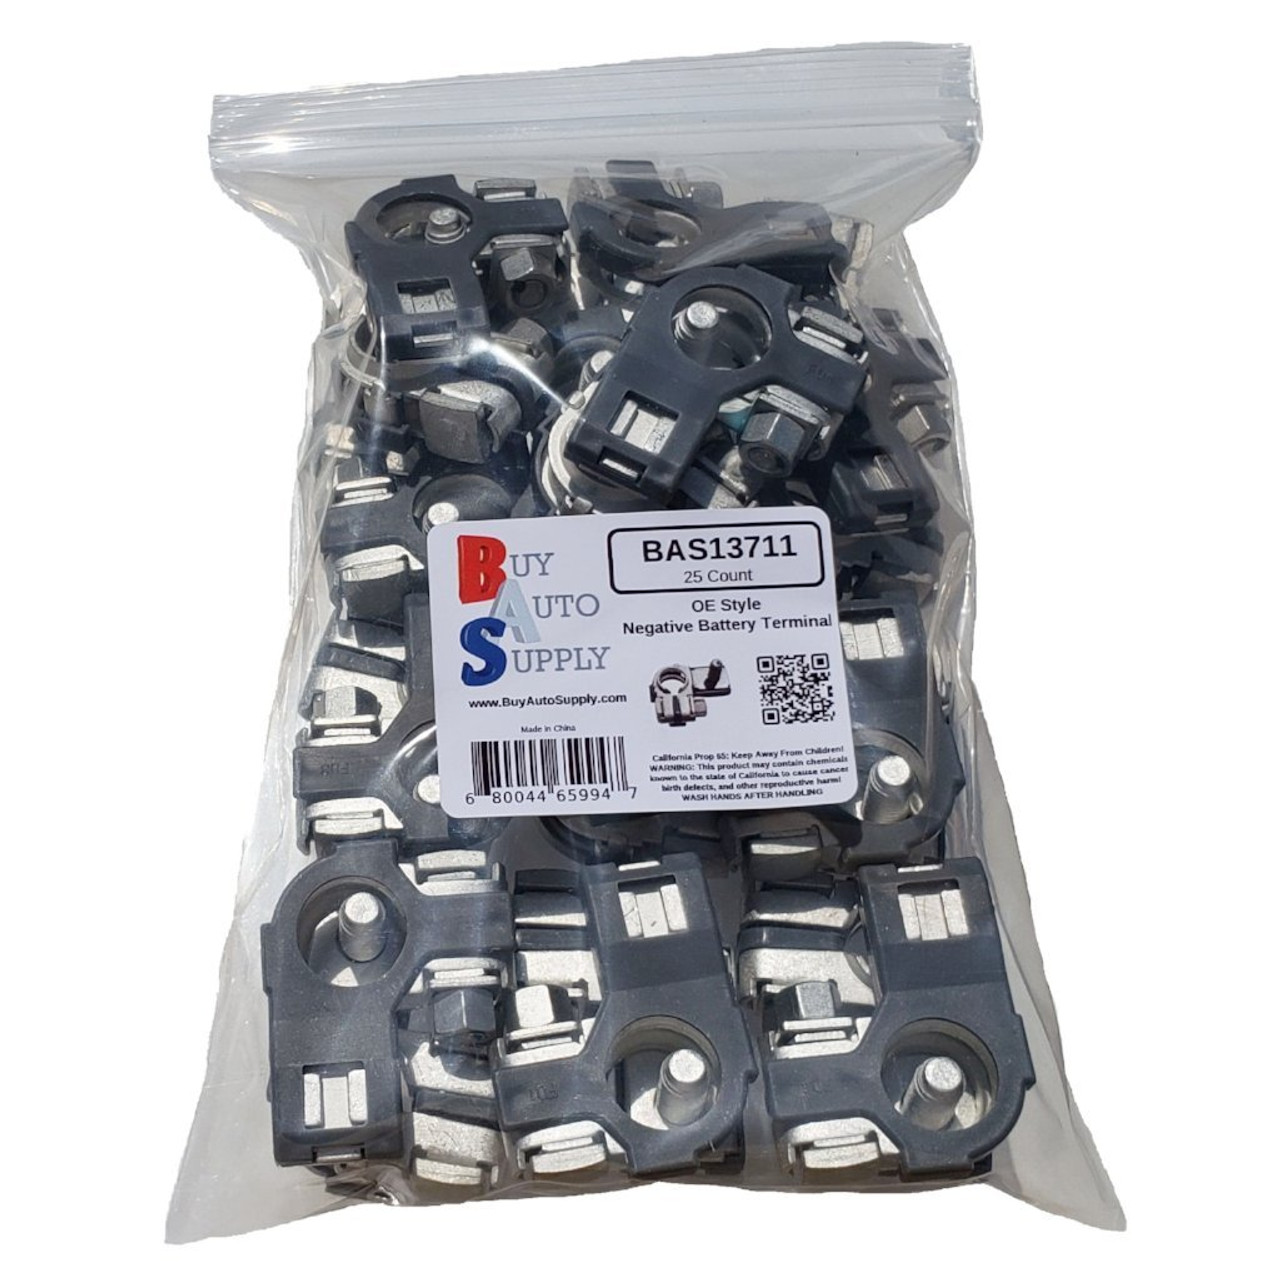 Bag of 25 Flag style Negative Top Post Battery Terminal